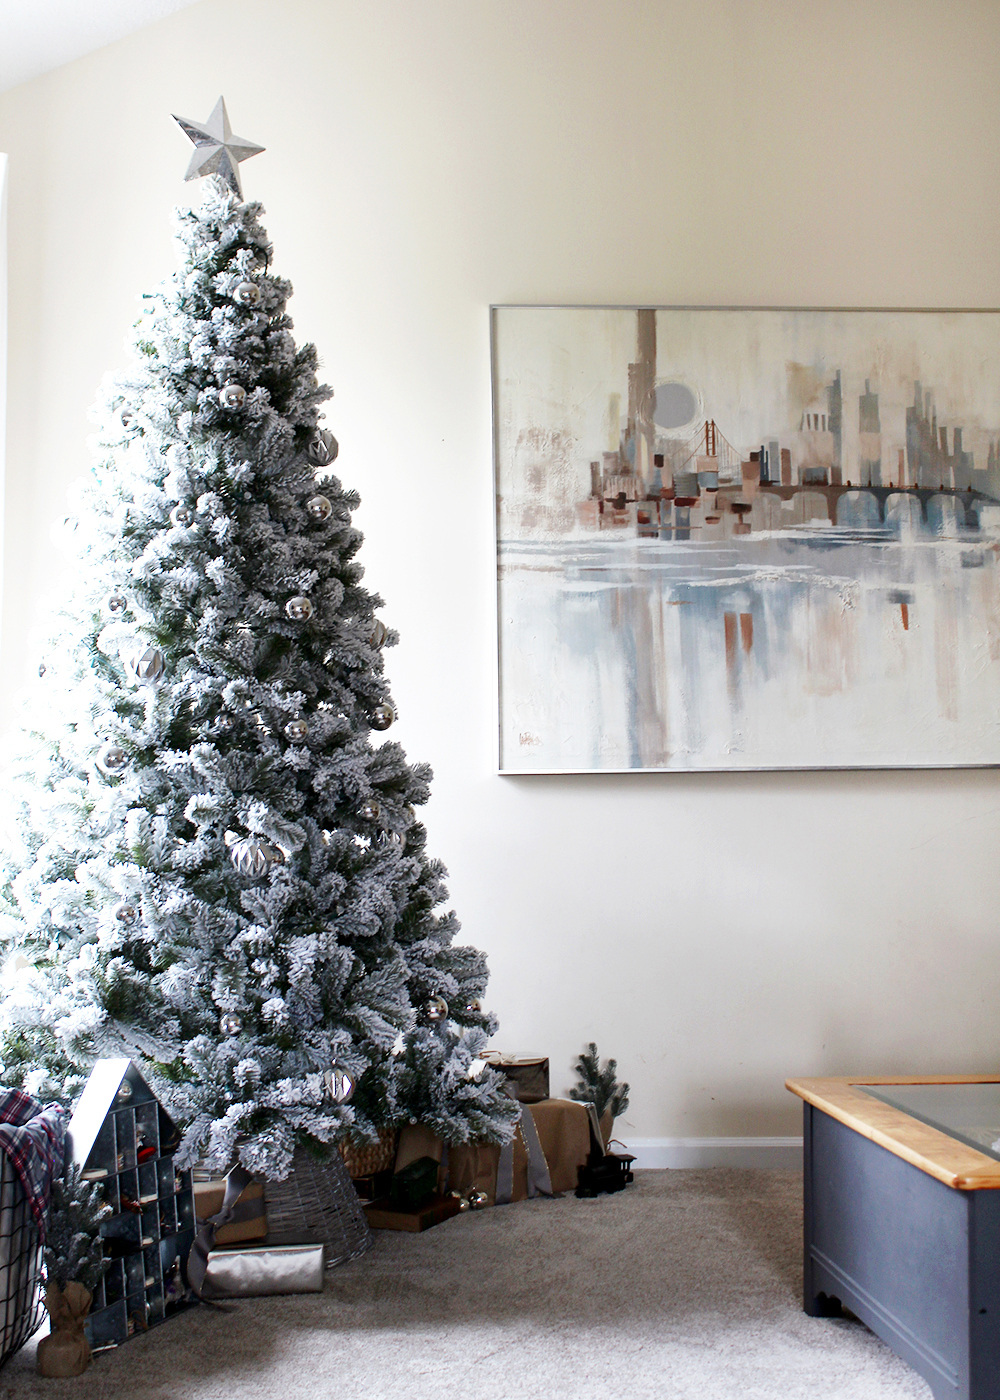 an 8 foot modern flocked Christmas tree with lights off #ChristmasDecor #FlockedTree